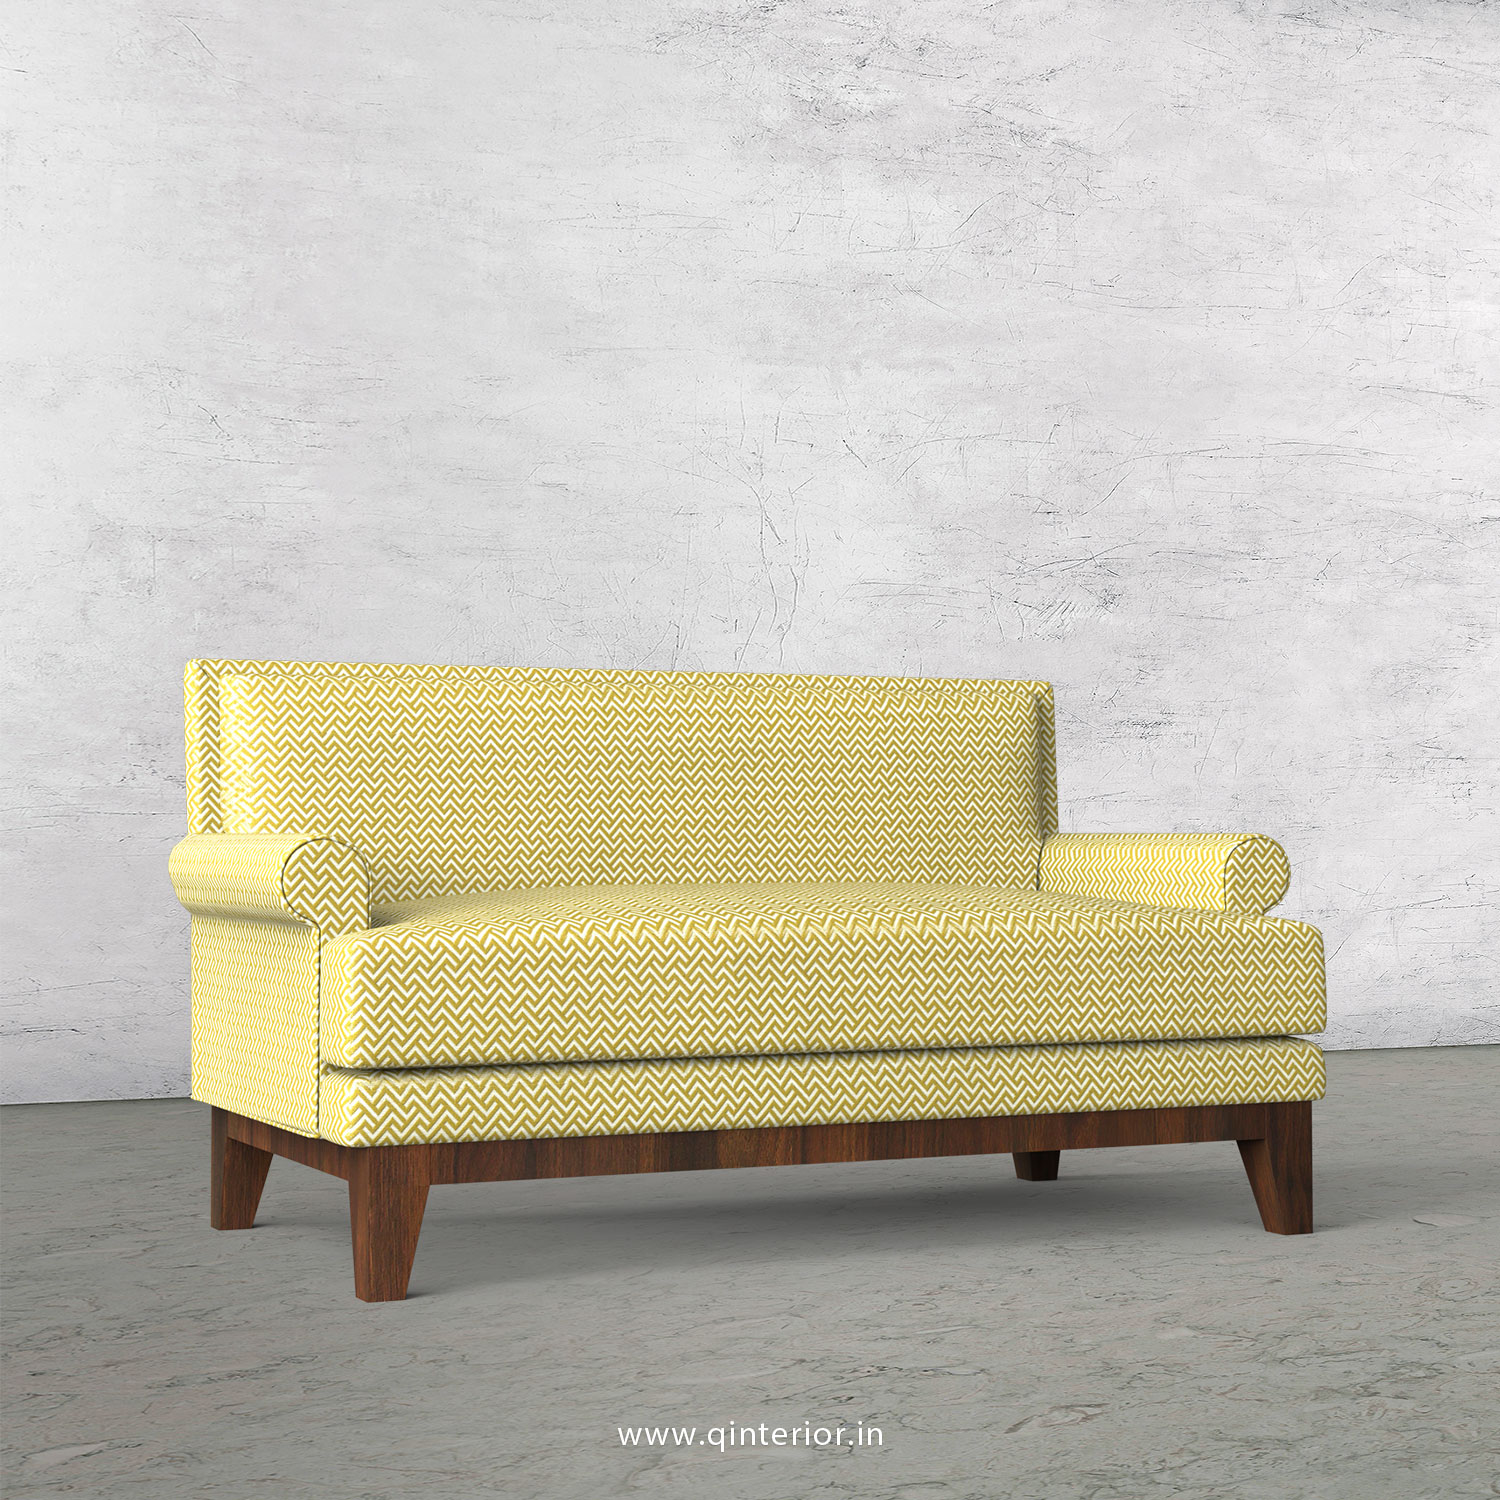 Aviana 2 Seater Sofa in Jacquard - SFA001 JQ06